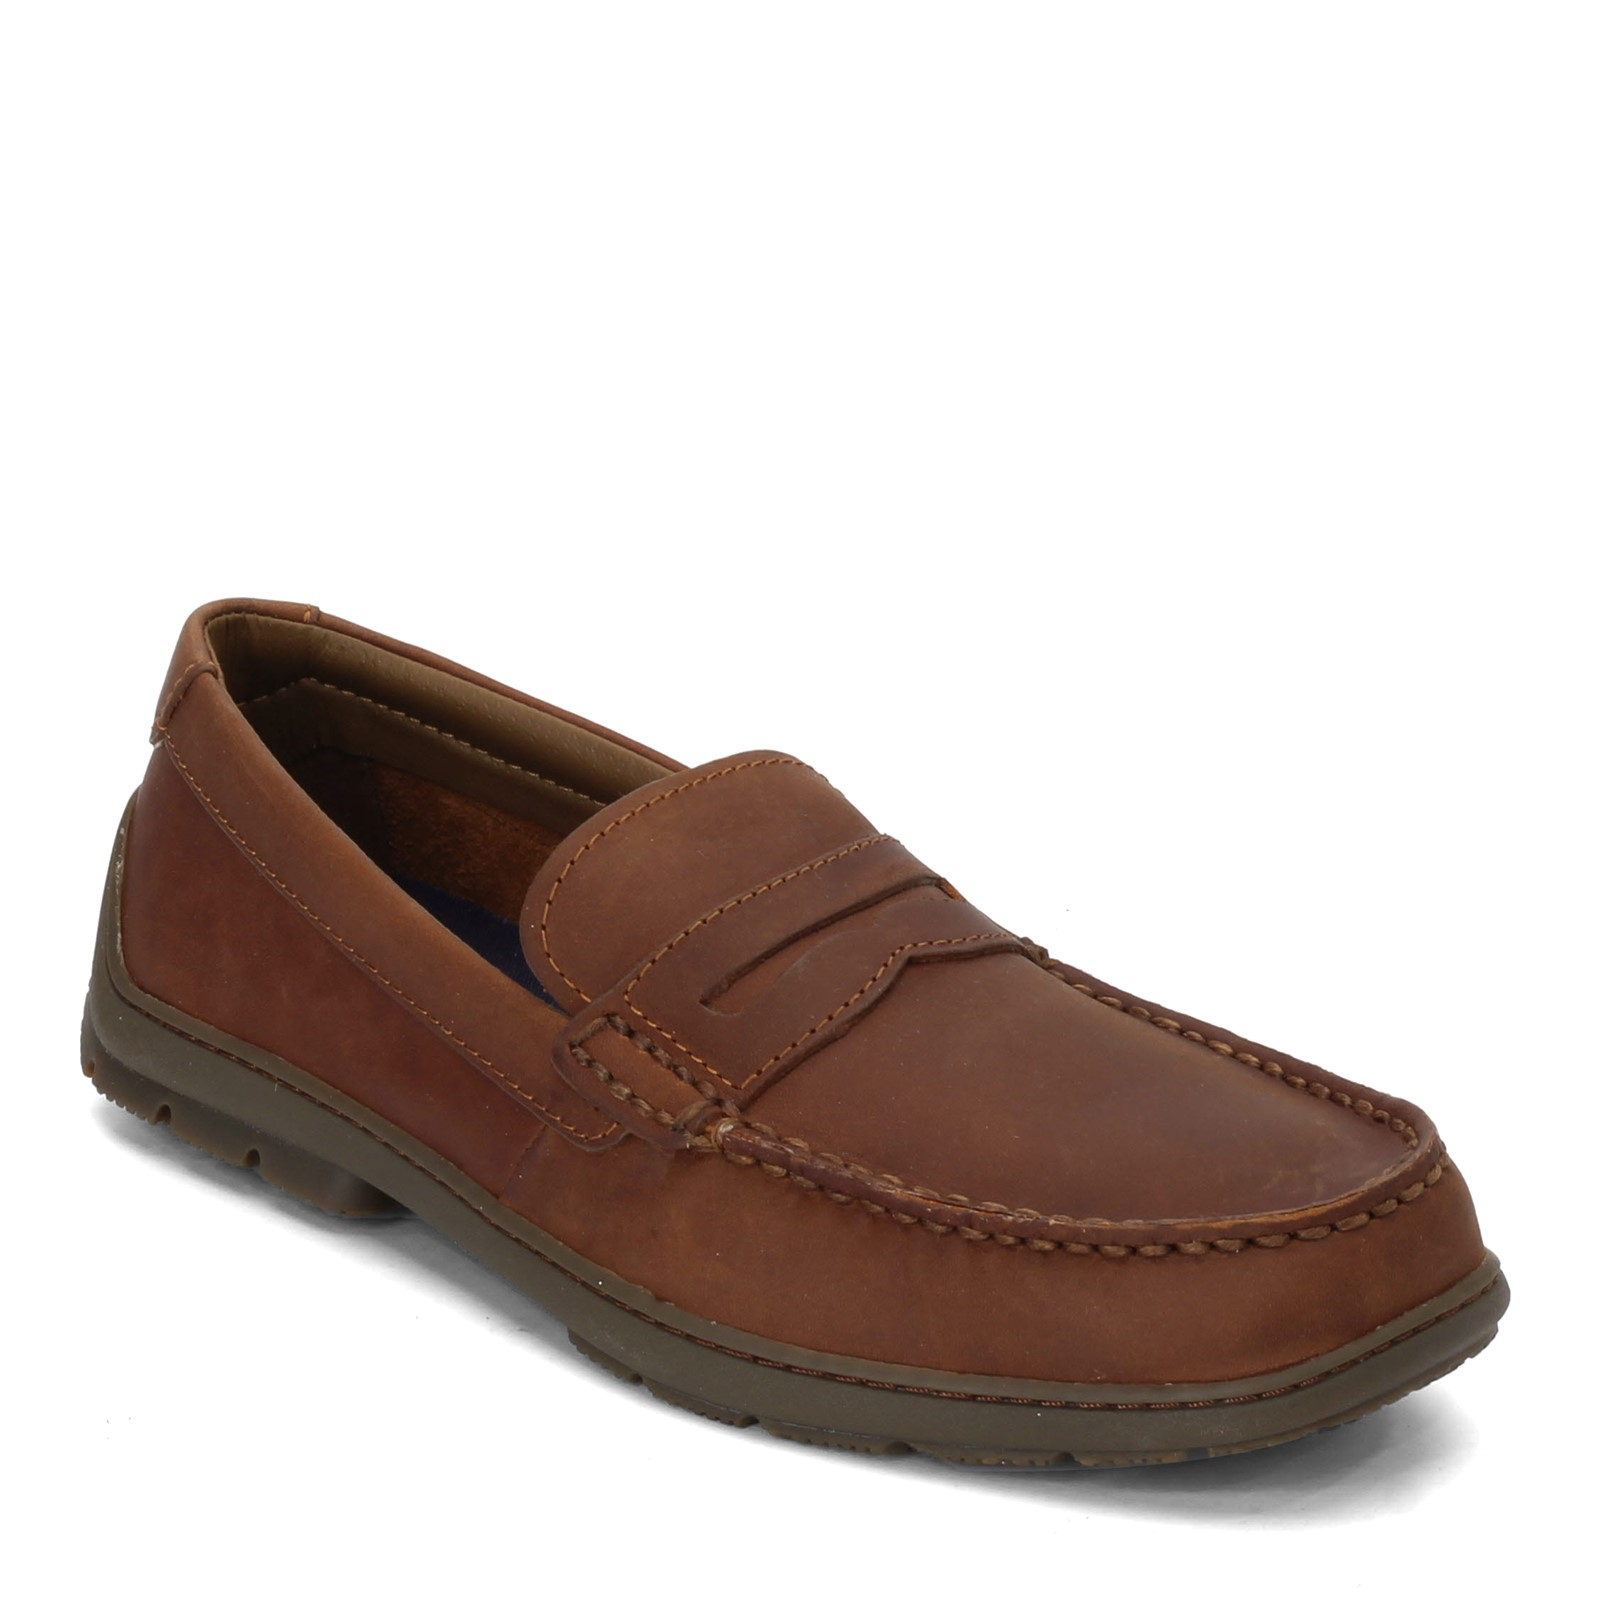 Men's Sperry, Monterey Penny Loafer